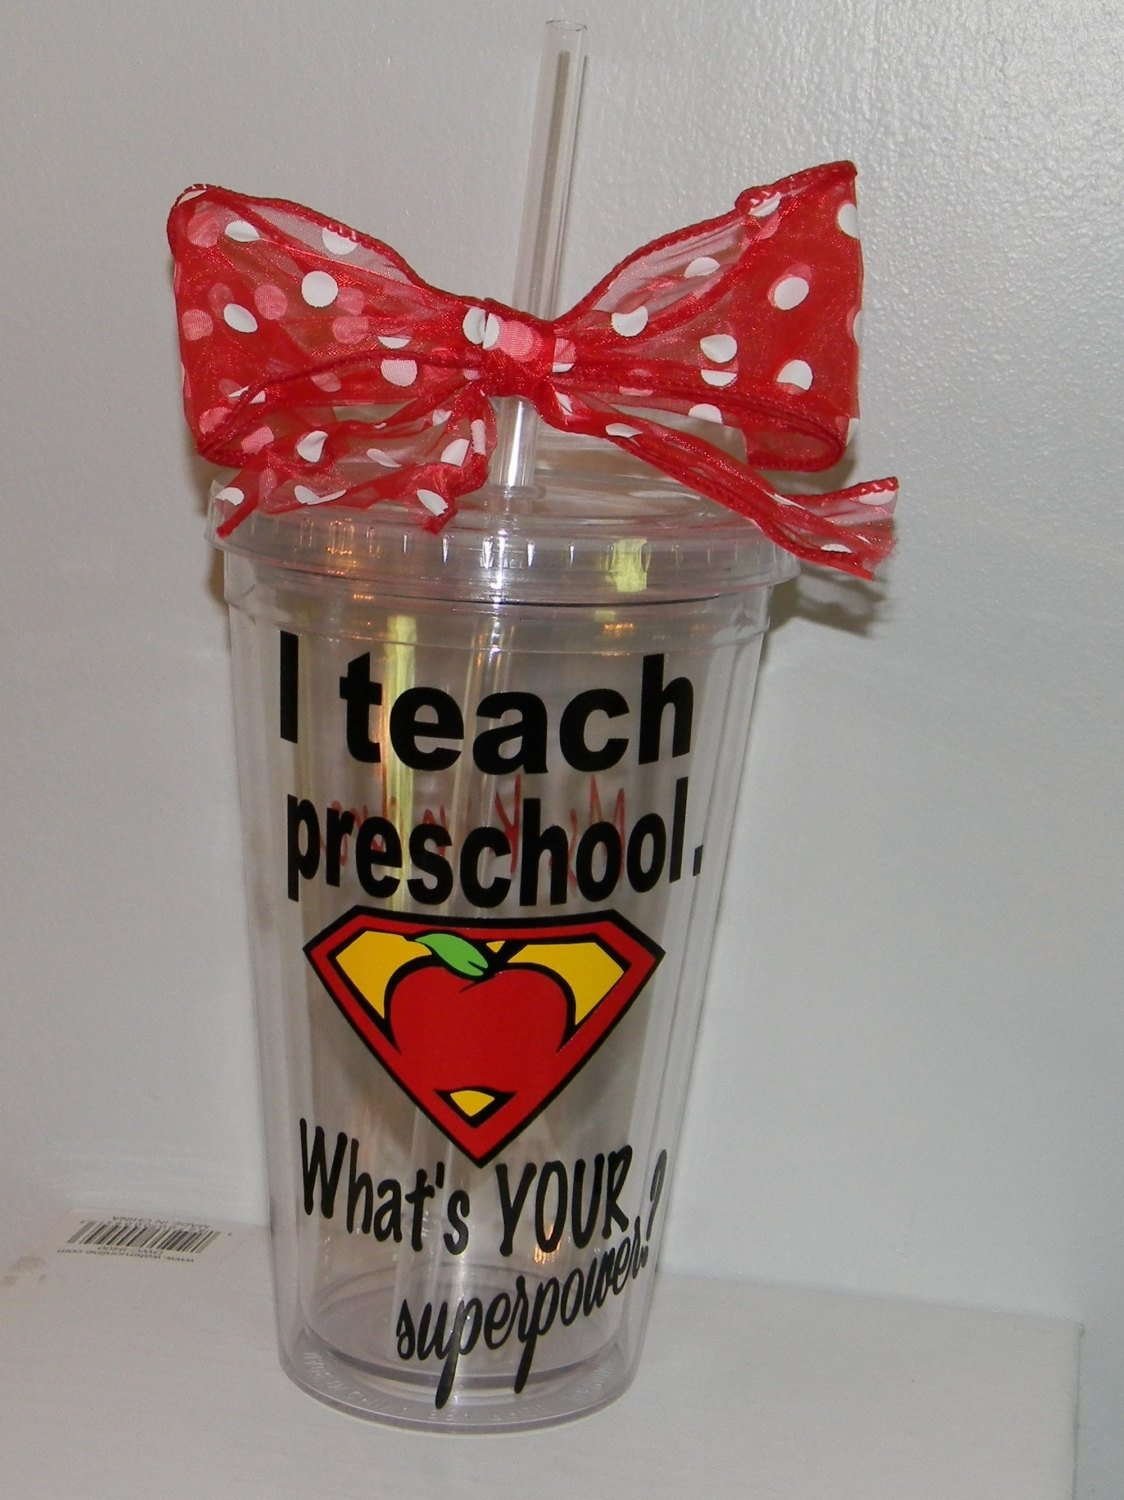 10 Lovable Christmas Gift Ideas For Daycare Teachers the most favorite daycare teacher gift ideas for unforgettable 2021